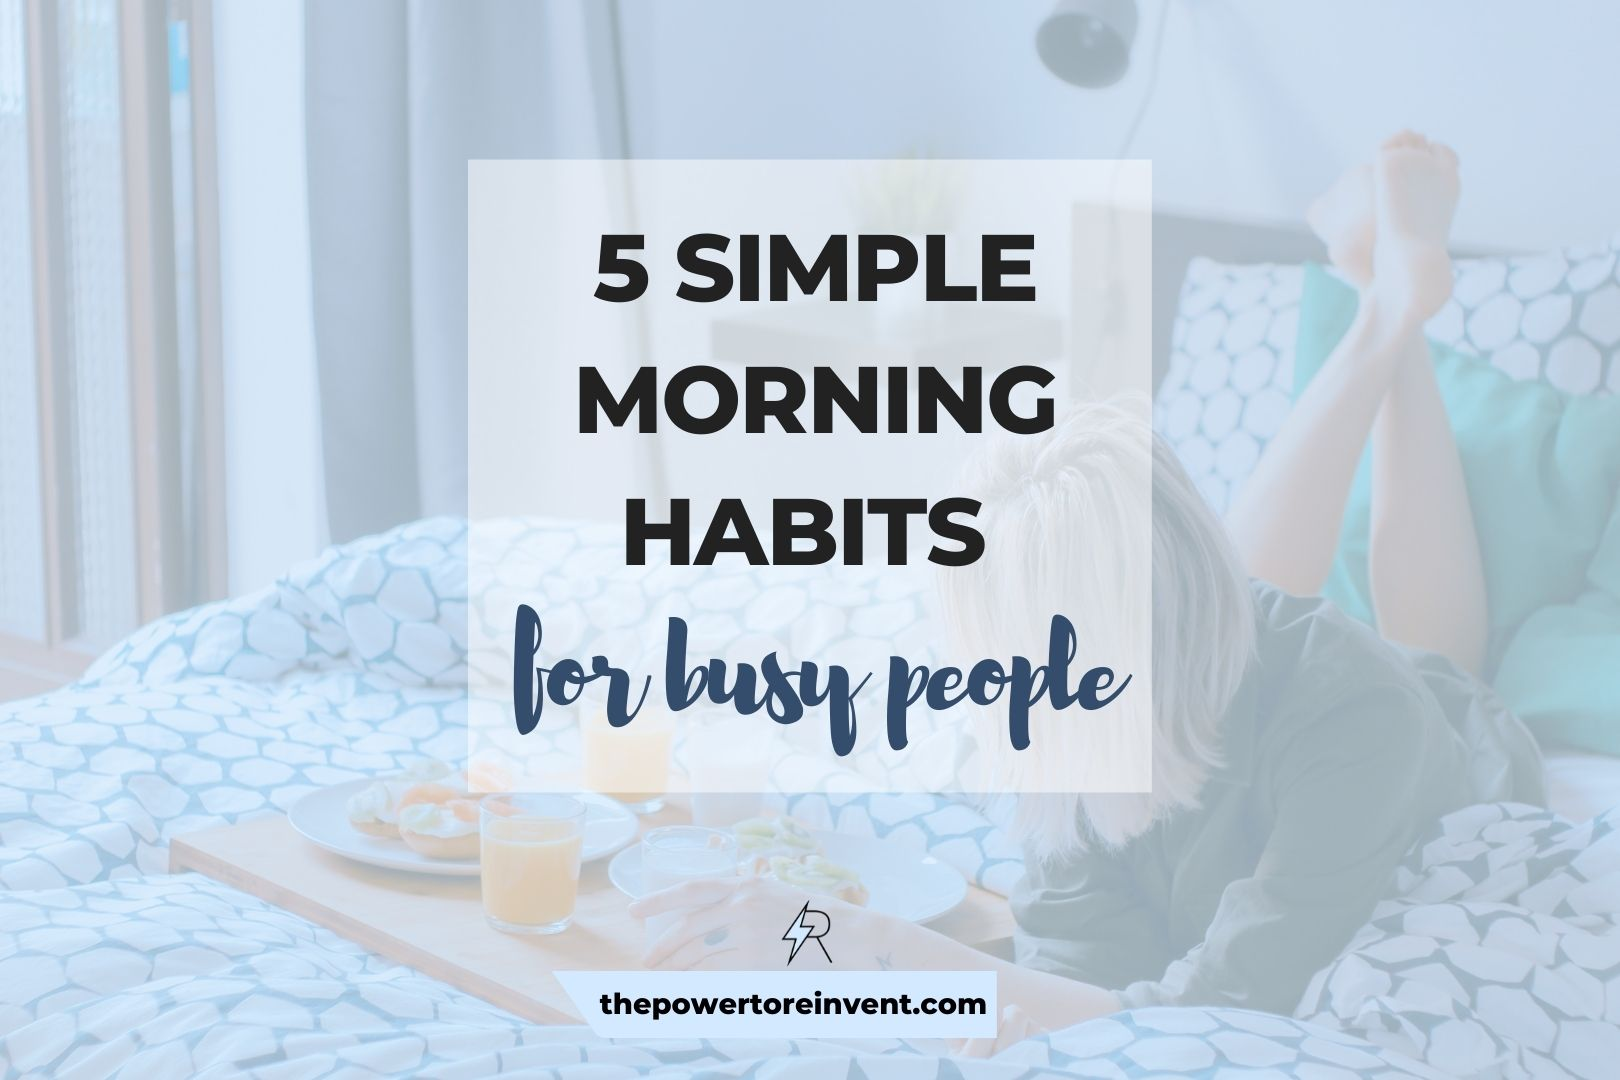 morning habits for busy people